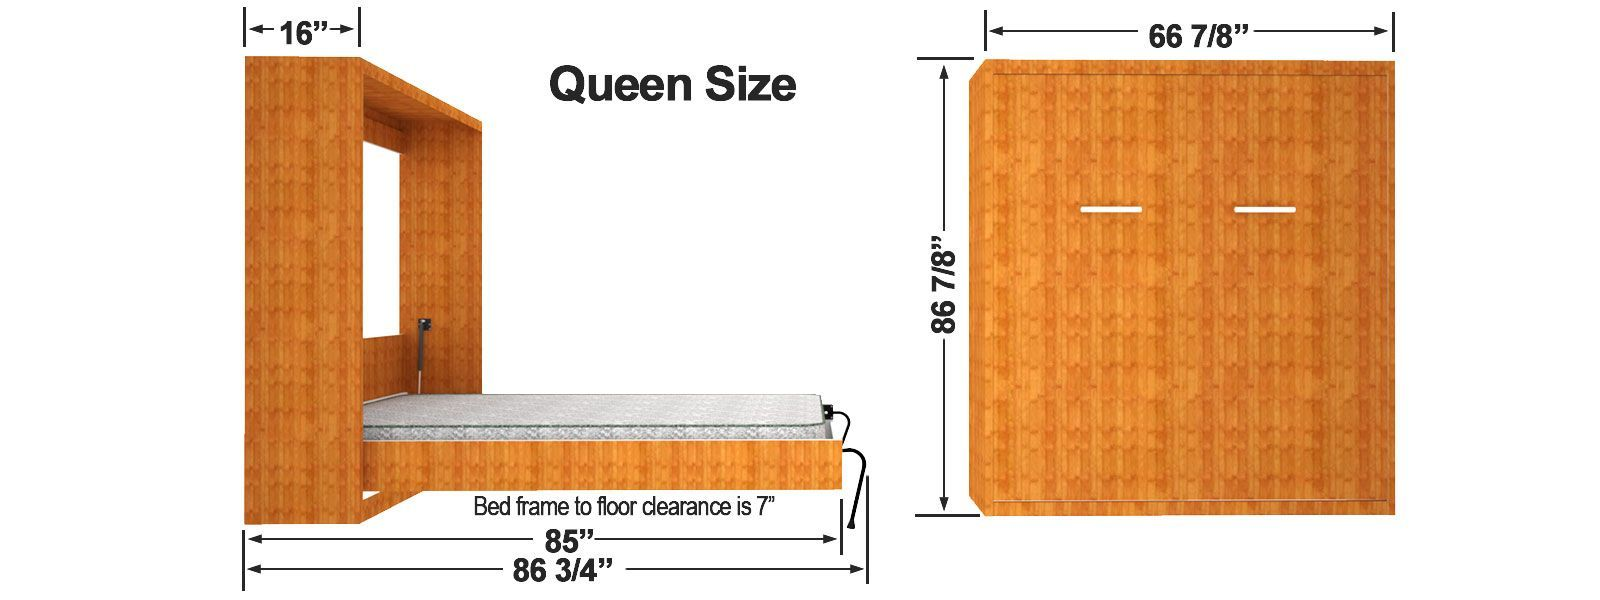 Vertical Wall Mount Murphy Bed Finished Dimensions Bed Dimensions Finished Mount Murphy Vertical Wall In 2020 Murphy Bed Diy Murphy Bed Ikea Murphy Bed Plans